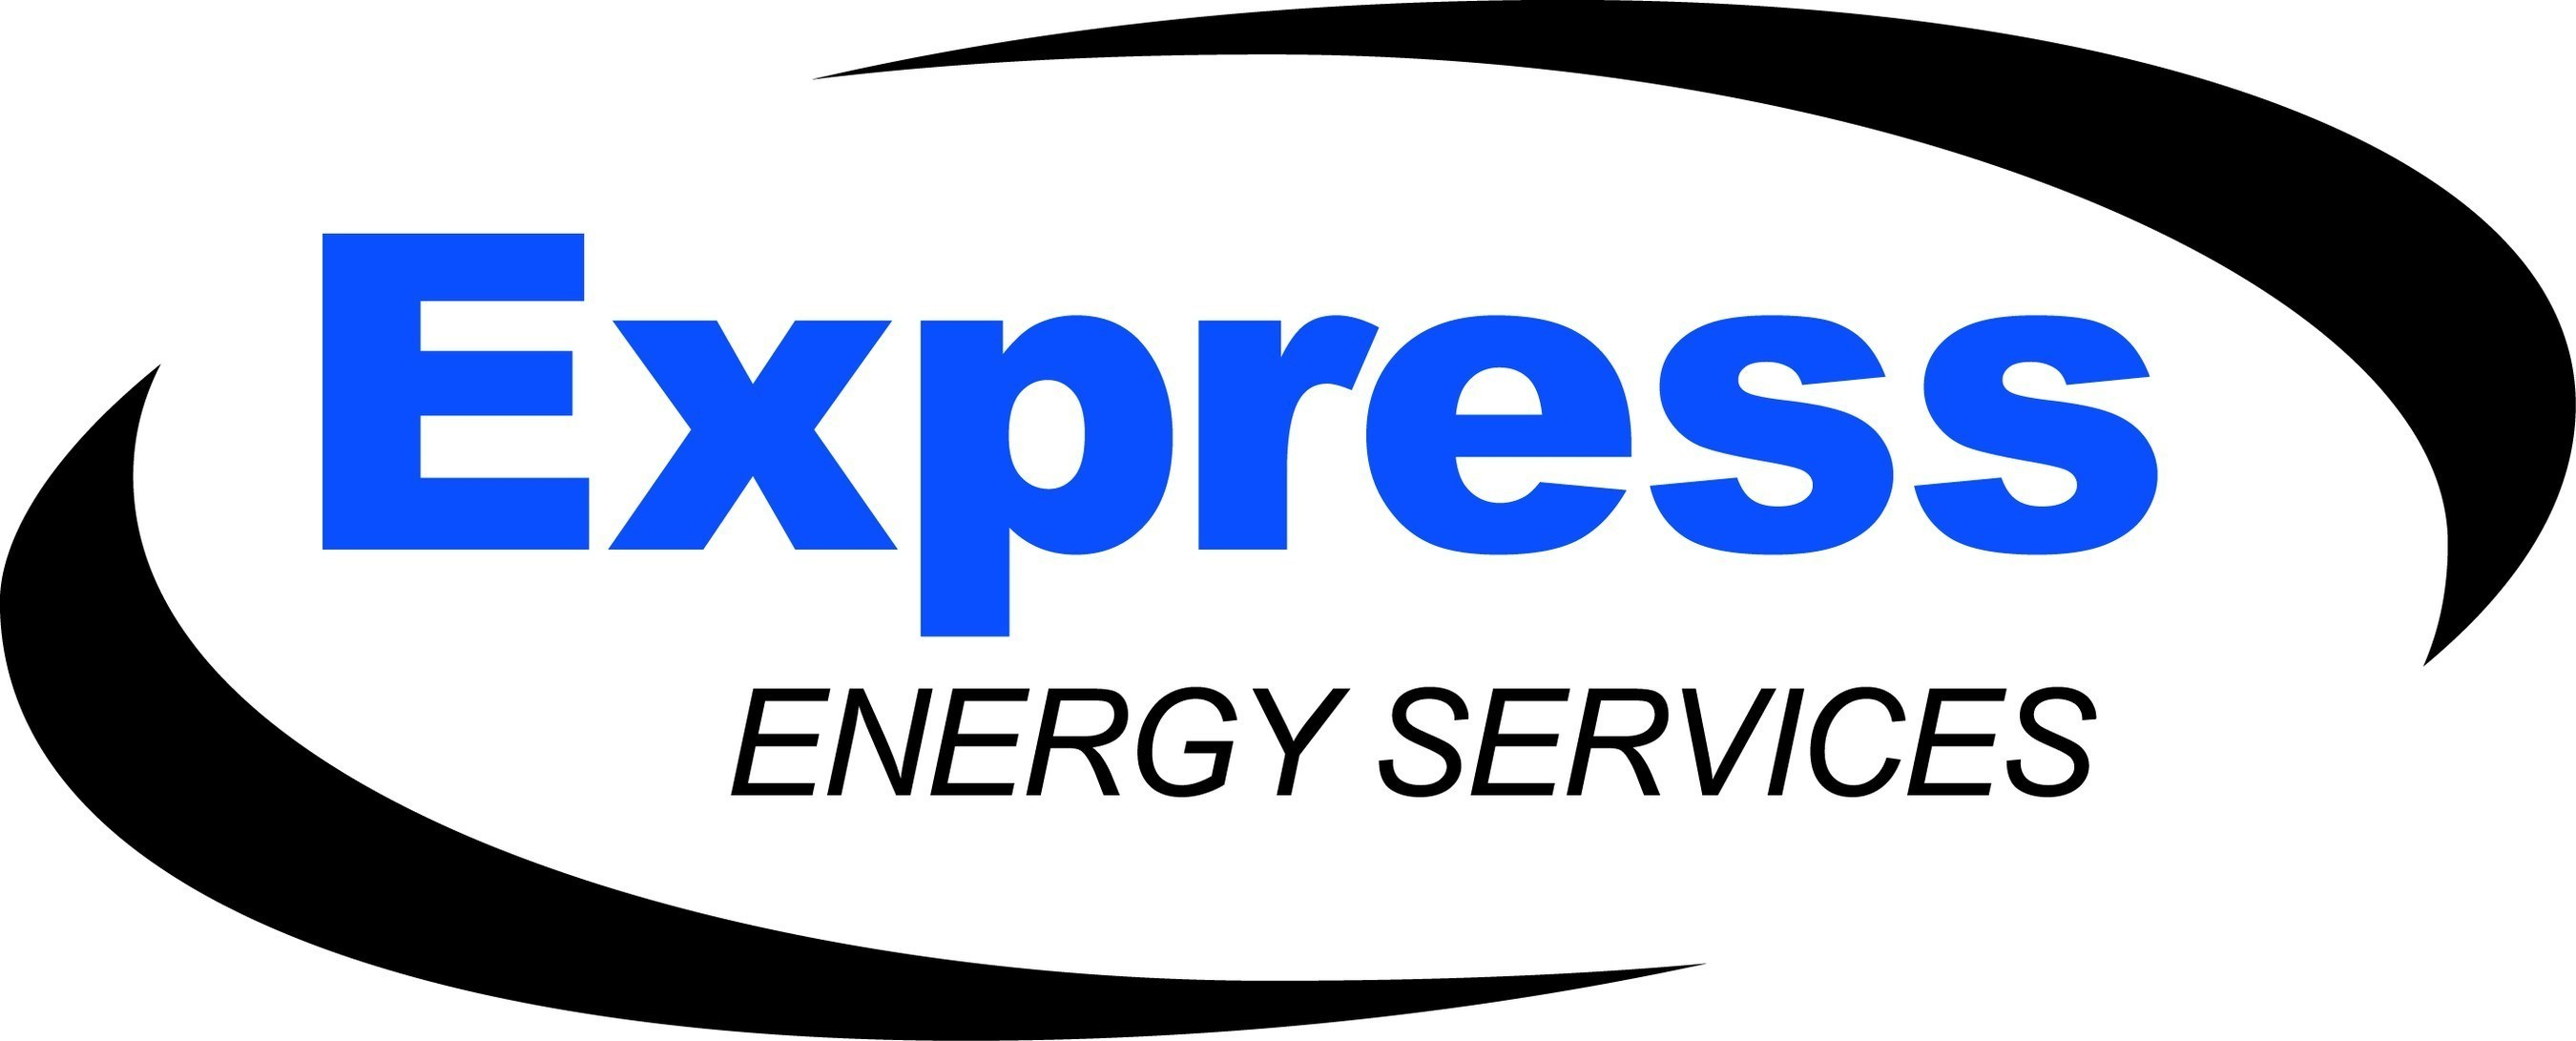 Express Energy Services company logo